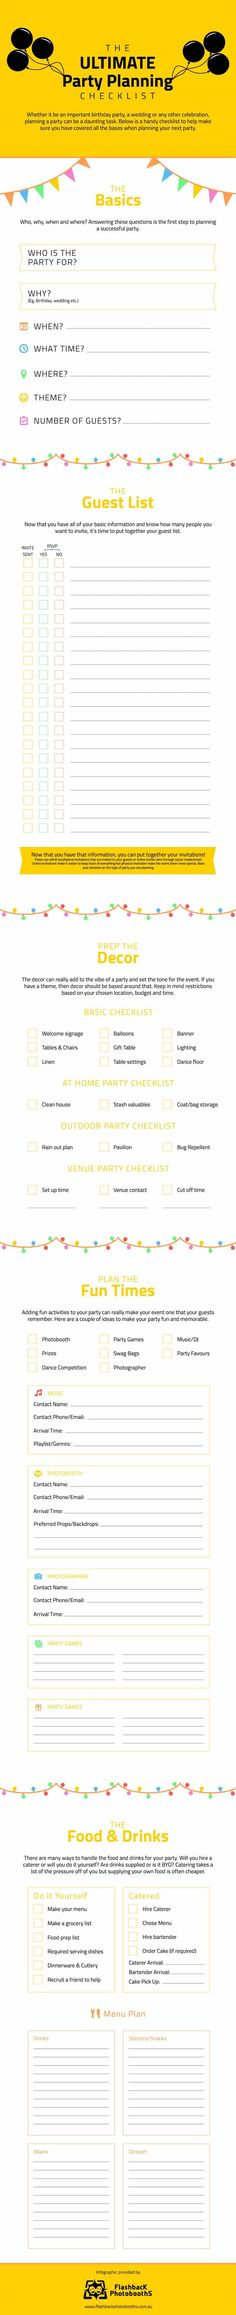 The first step to planning an event is to get organized!! Party - party guest list template